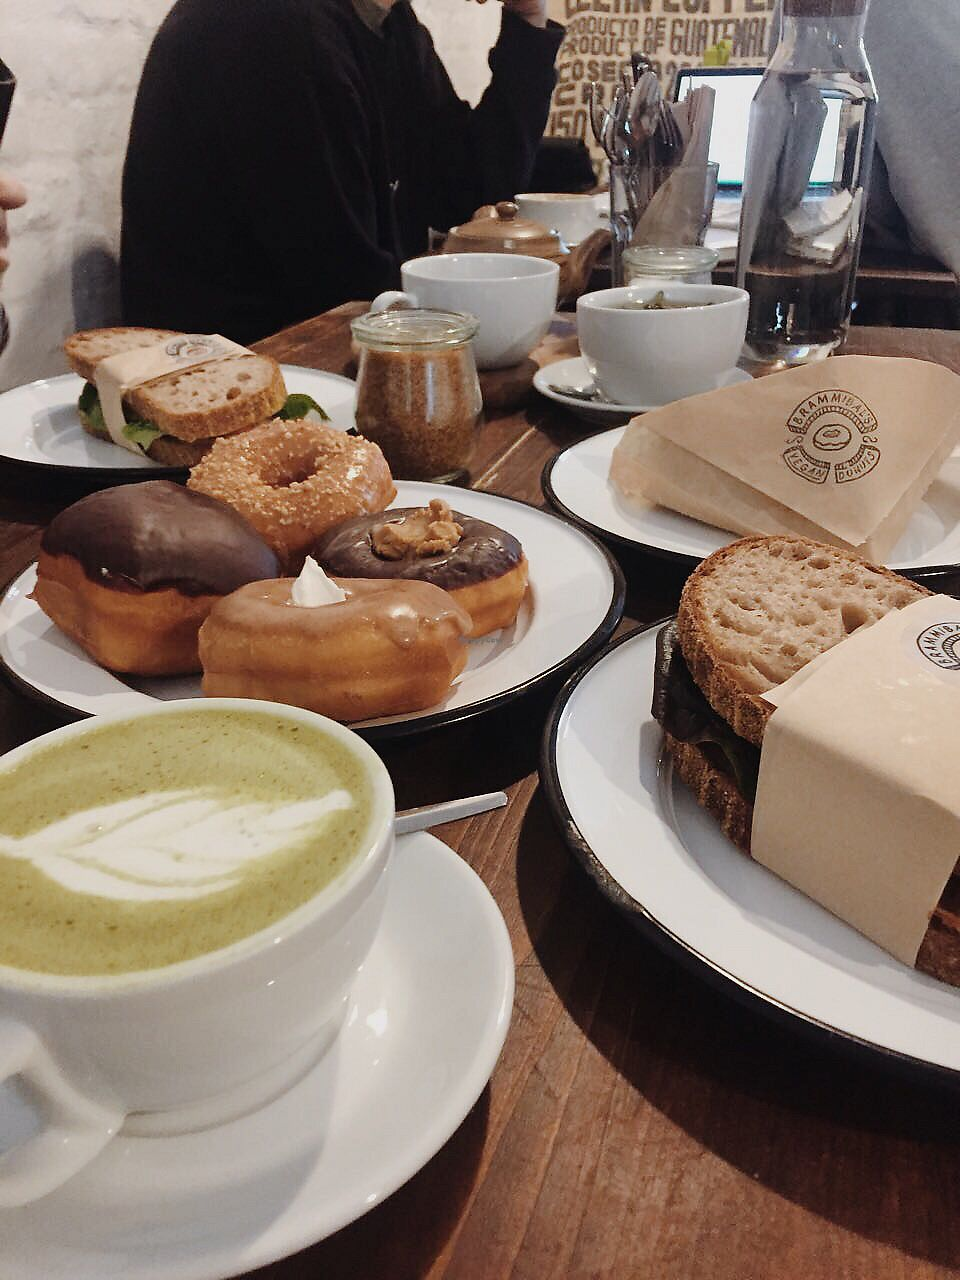 """Photo of Brammibal's Donuts - Maybachufer  by <a href=""""/members/profile/meislnicoline"""">meislnicoline</a> <br/>Breakfast spread <br/> April 14, 2018  - <a href='/contact/abuse/image/65783/385447'>Report</a>"""